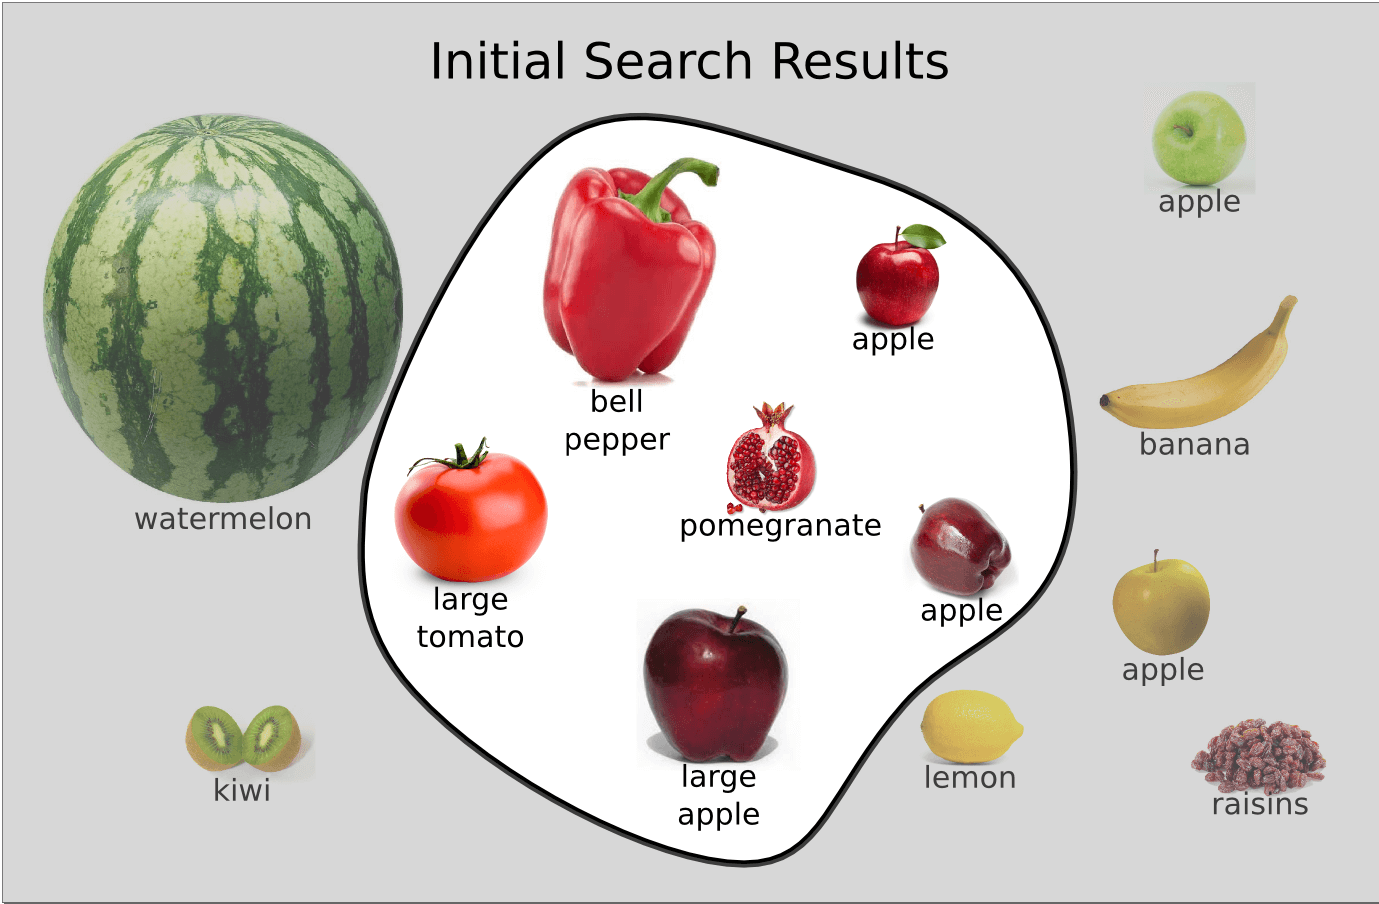 Illustration of documents and results in the search for apples